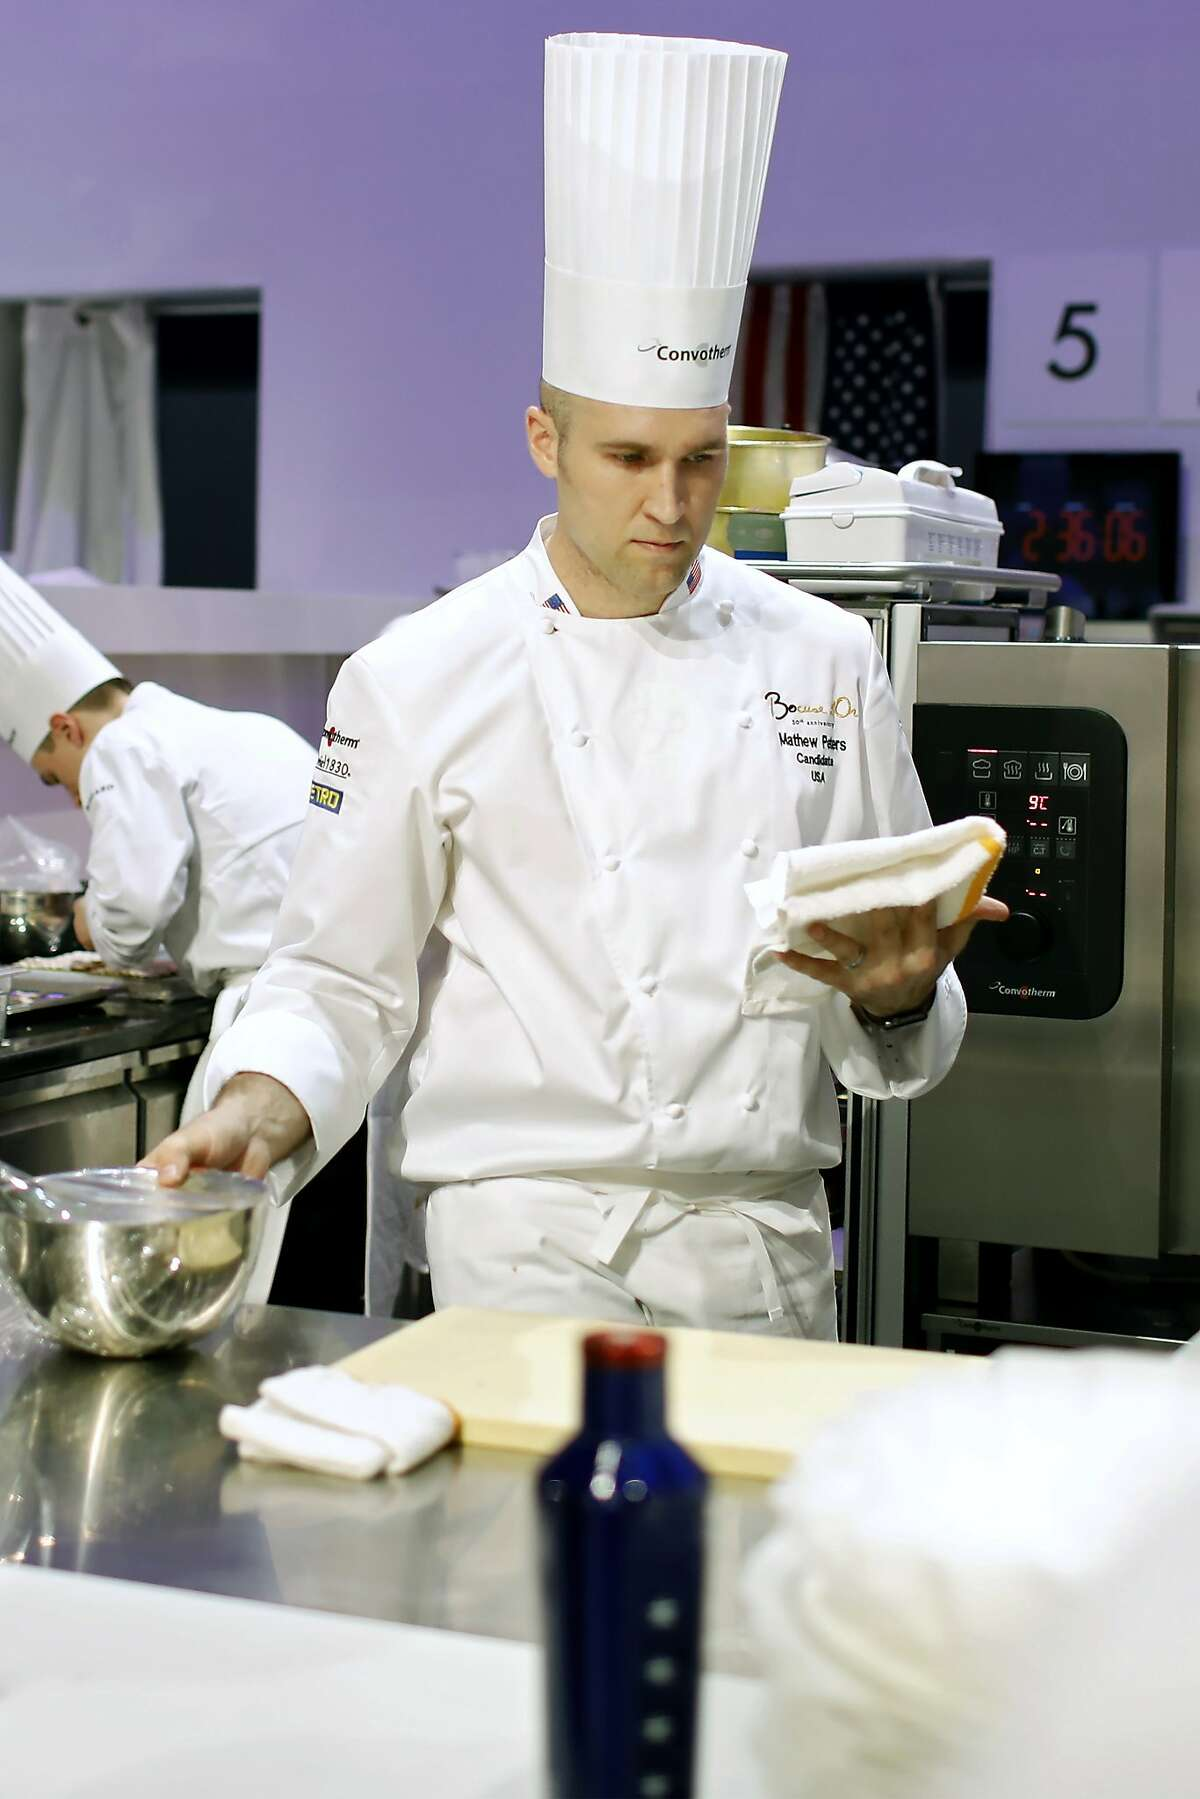 """Mathew Peters, of USA, prepares food during the """"Bocuse d'Or"""" trophy, in Lyon, central France, Wednesday, Jan. 25, 2017. The contest, a sort of world cup of cuisine, was started in 1987 by Lyon chef Paul Bocuse to reward young international culinary talents. (AP Photo/Laurent Cipriani)"""